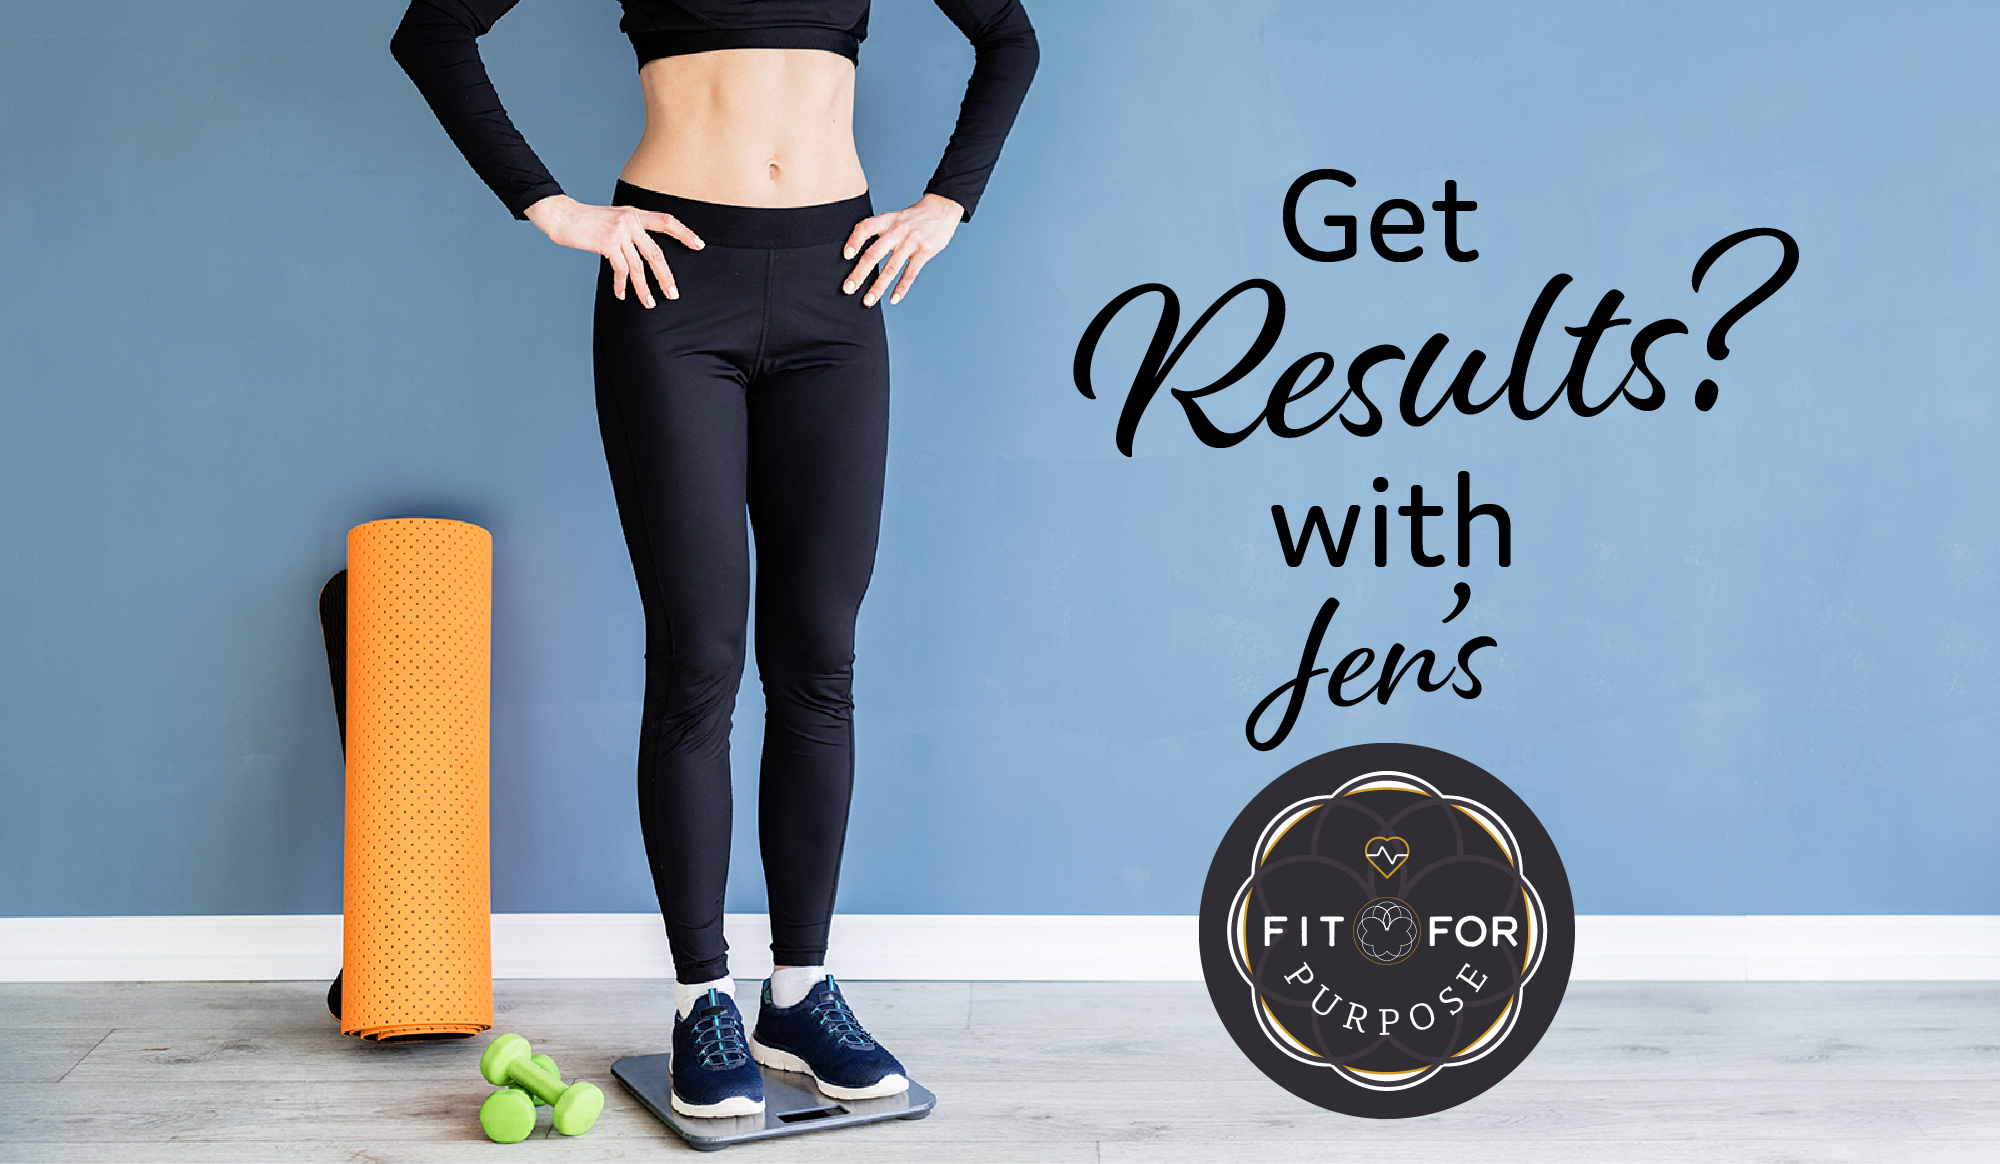 jens-fit-for-purpose-01